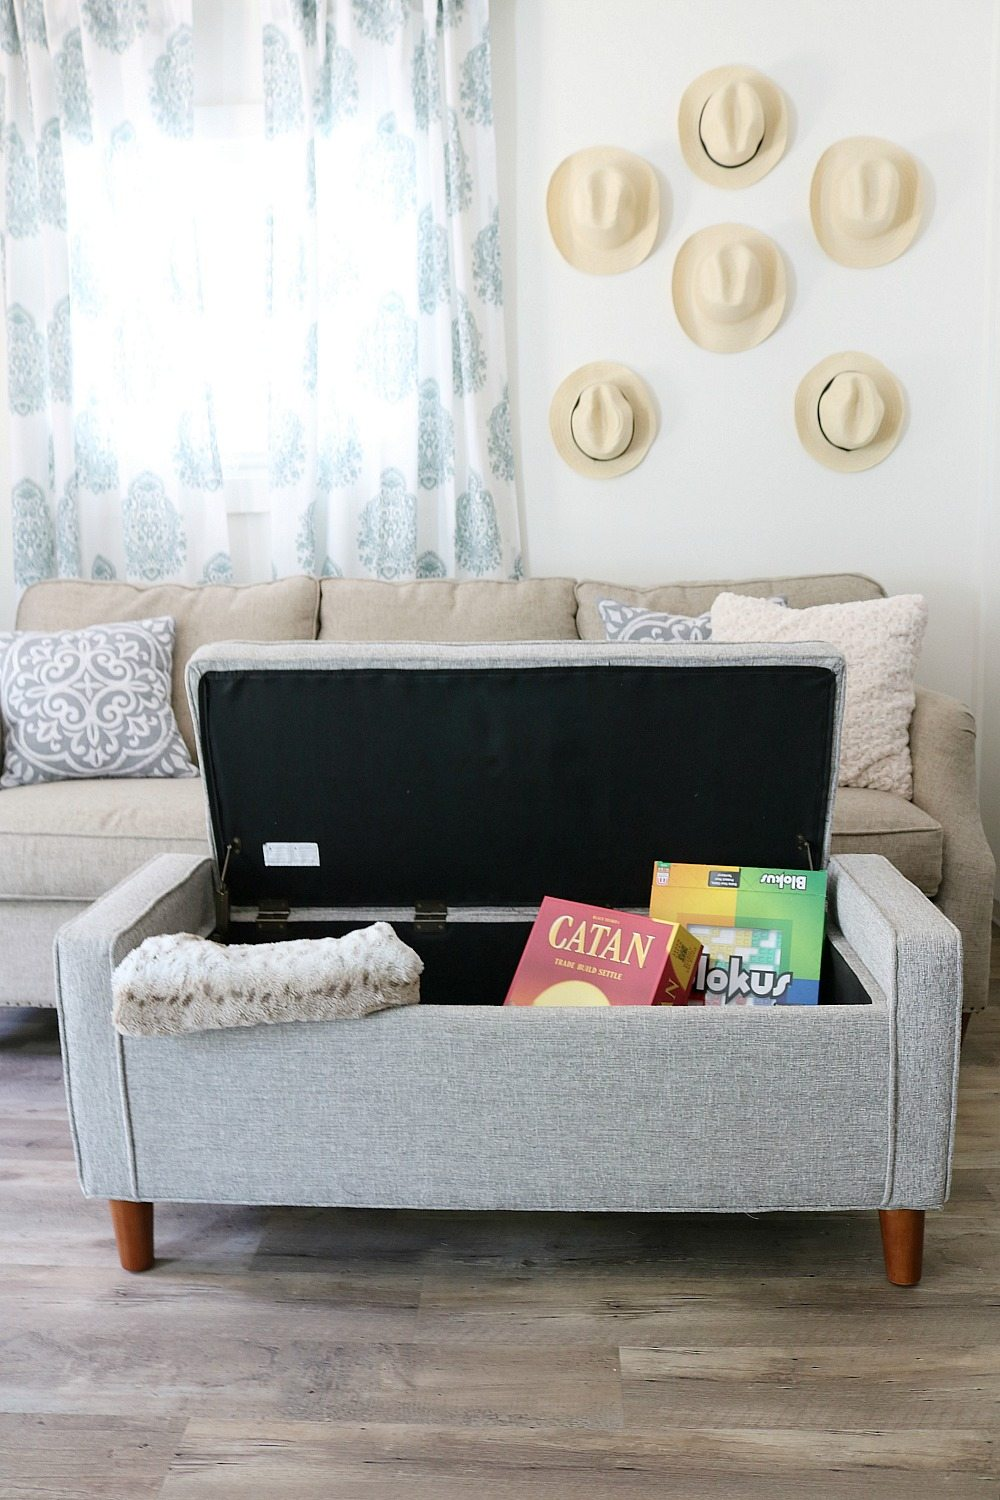 When storage is needed this bench is perfect for small house living